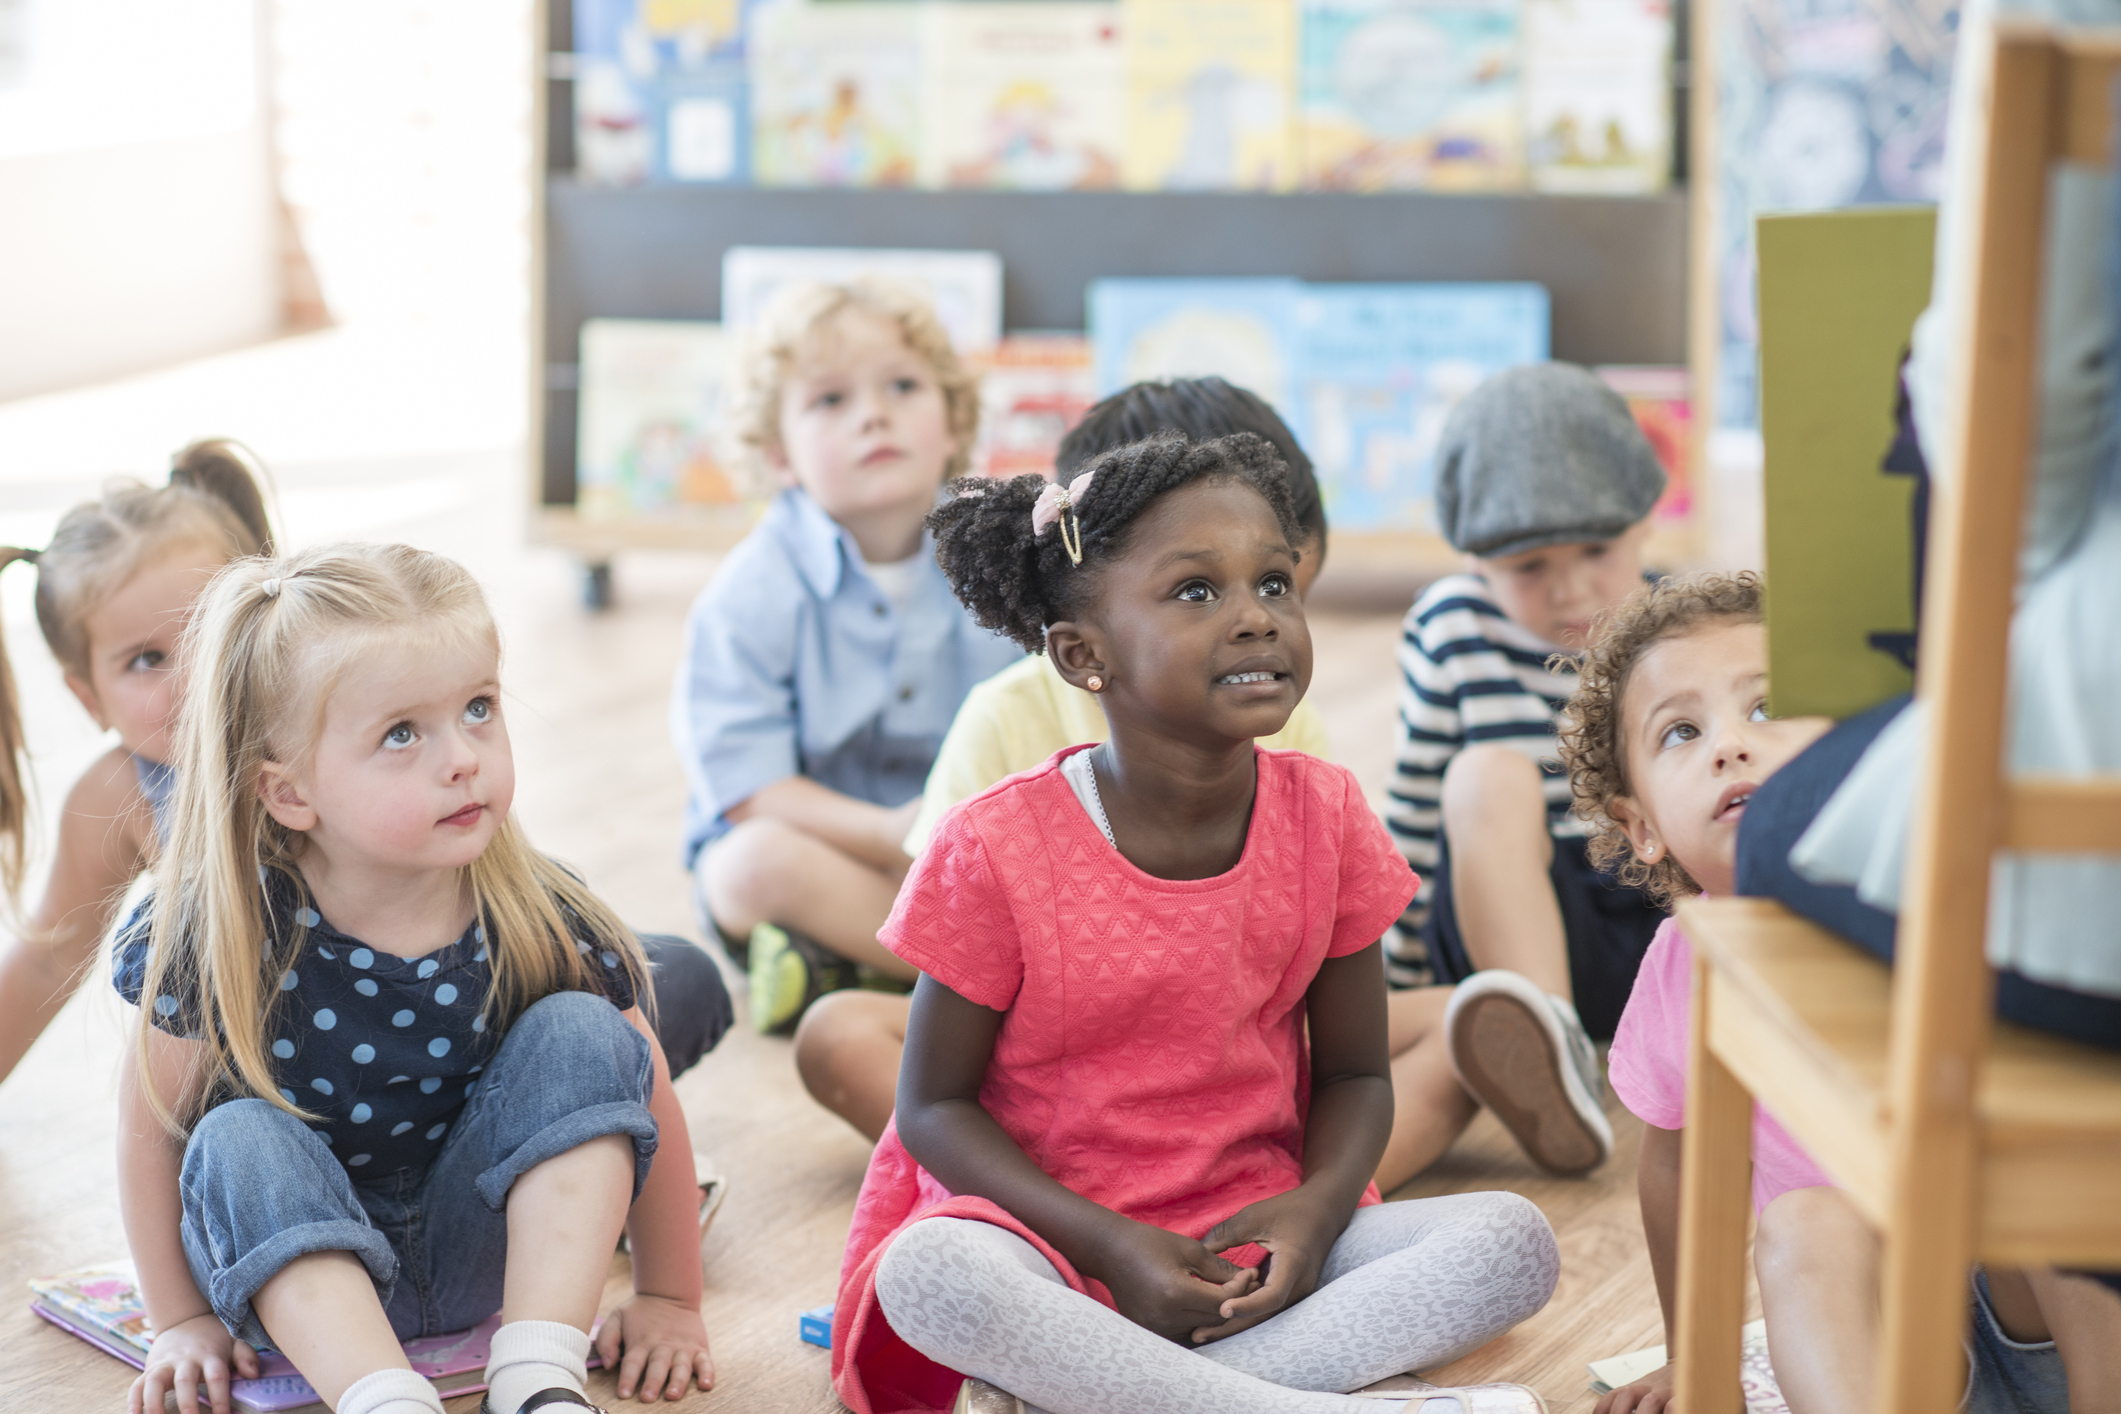 Spring Storytimes - With Miss Susie the StoryladyTHERE ARE NO CURRENT STORYTIMES AT THIS TIME.  STAY TUNED FOR UPDATES!Itty Bitty Storytime (ages birth-2 years)Lyceum Village, 14281 Chambers Road, Tustin, CA 92780Wednesdays 10-10:50 am, $30 per child for the six-week session.Preschool Storytime (ages 3-6 years)Wednesdays 11-11:50 am, $40 per child for the six-week session (includes a craft)